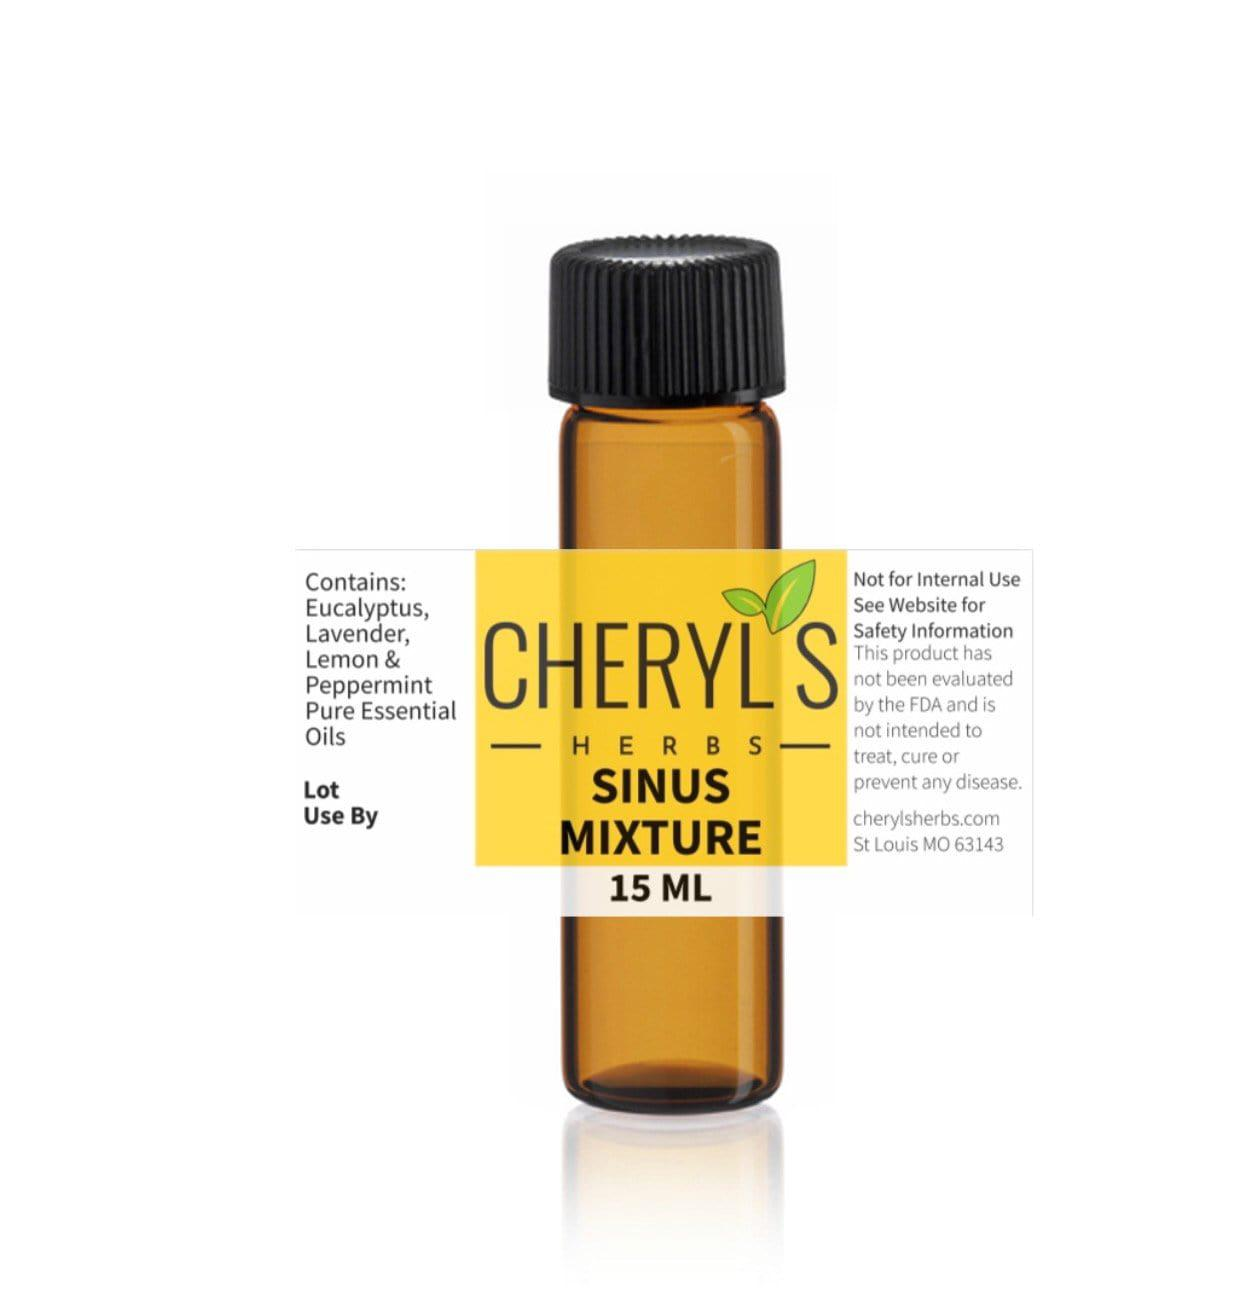 SINUS MIXTURE - Cheryls Herbs